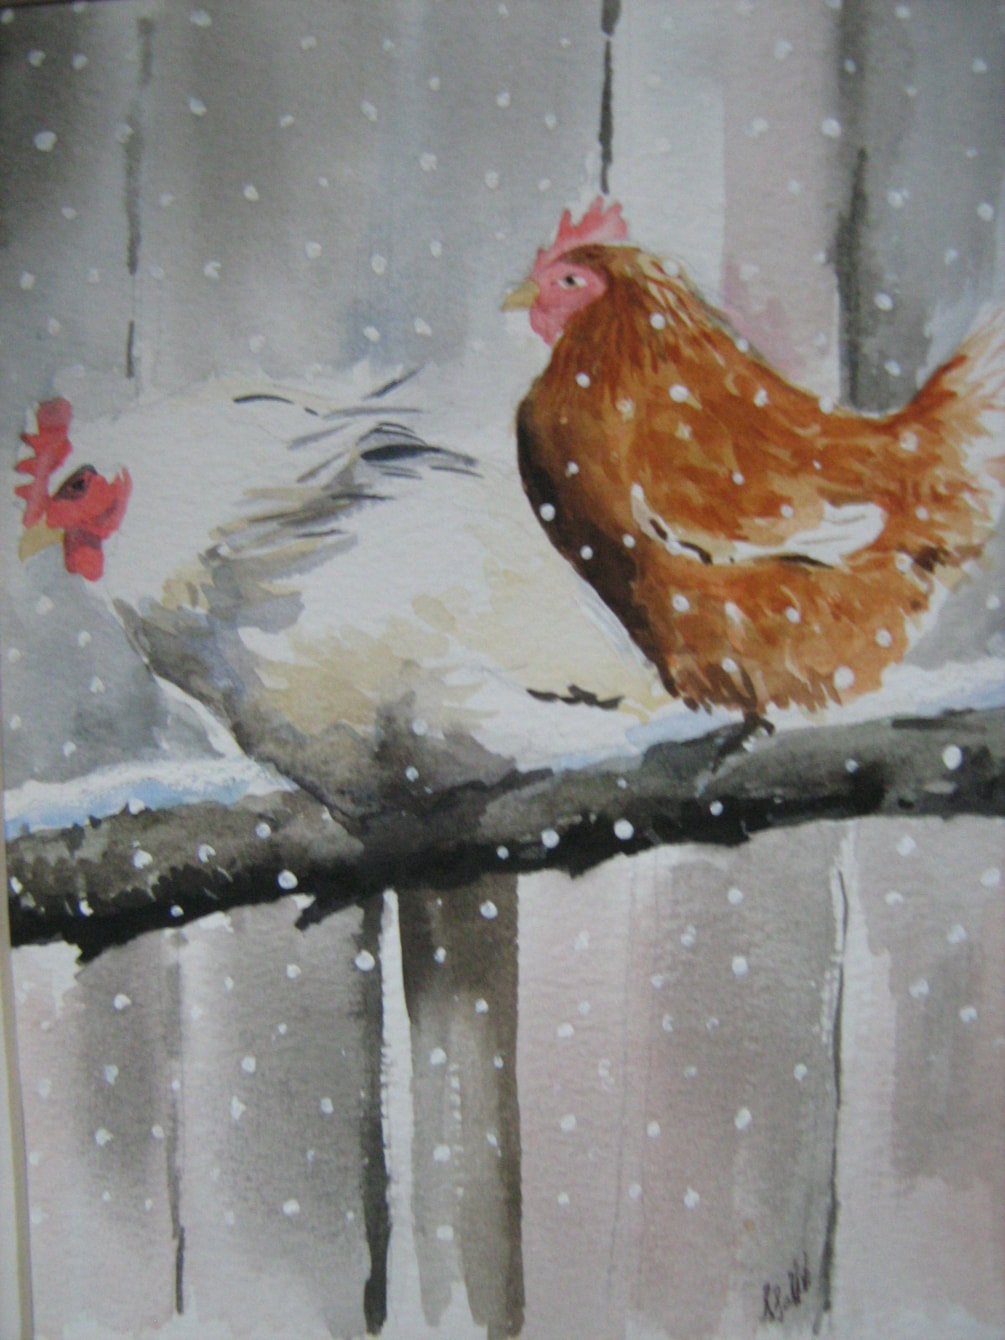 Chickens on perch in snow image only